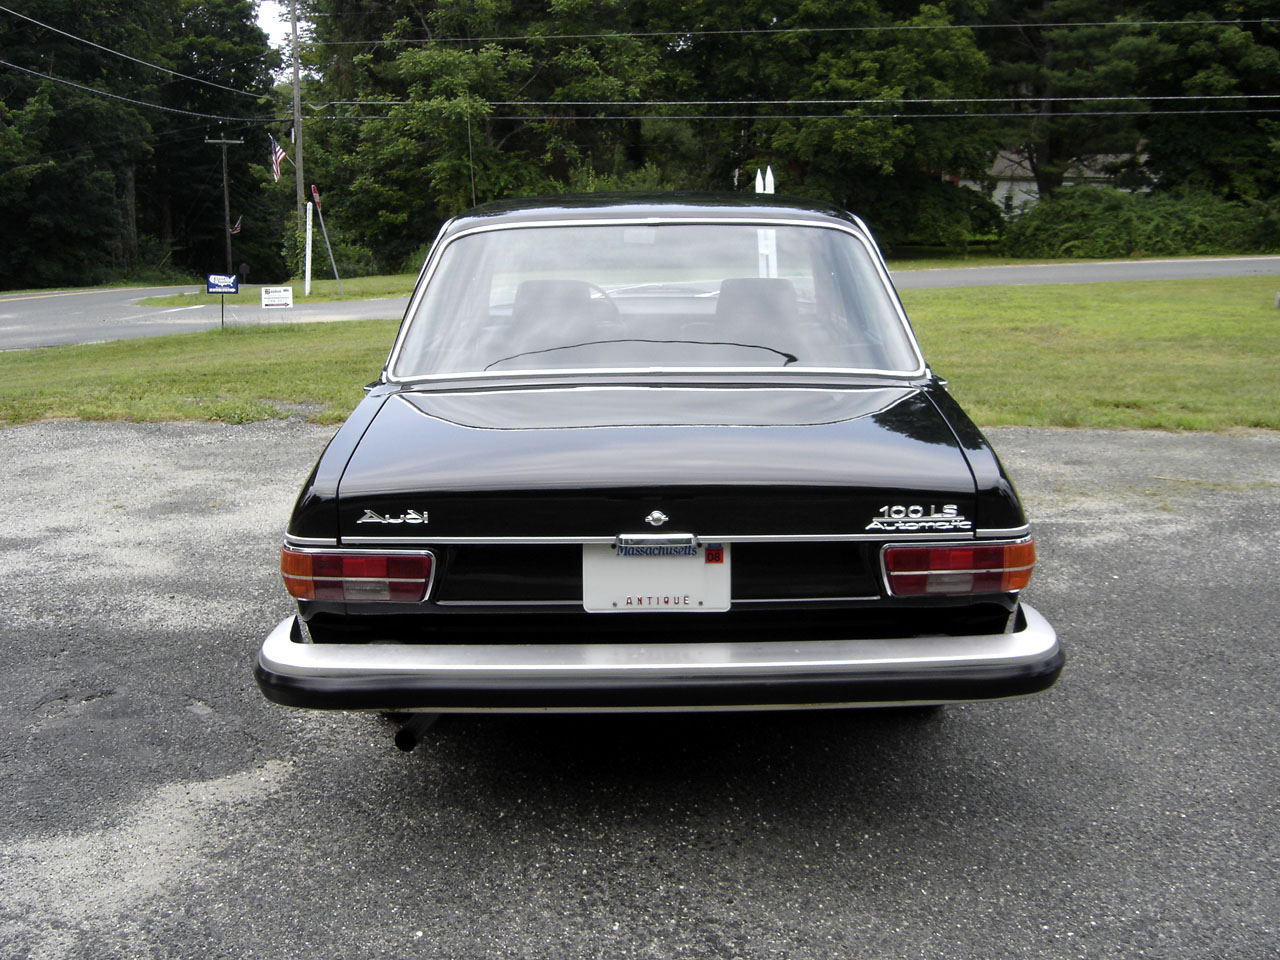 Vehicles For Sale: 2-Owner, Low-Mile 1974 Audi 100LS For Sale